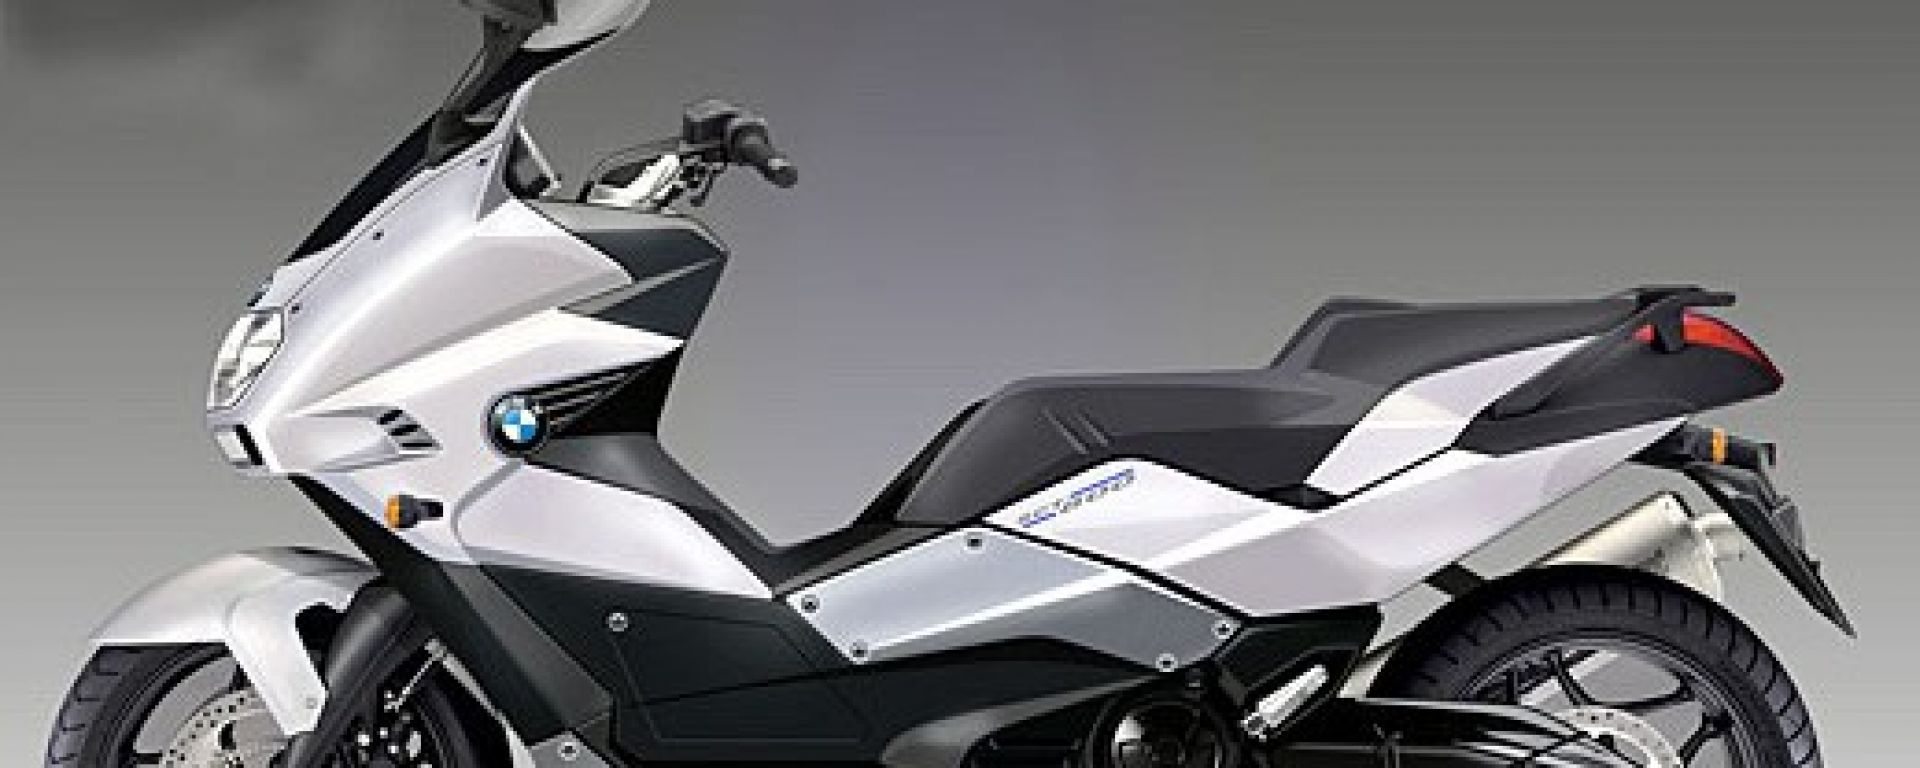 Prossimamente:: BMW Scooter 800 - MotorBox